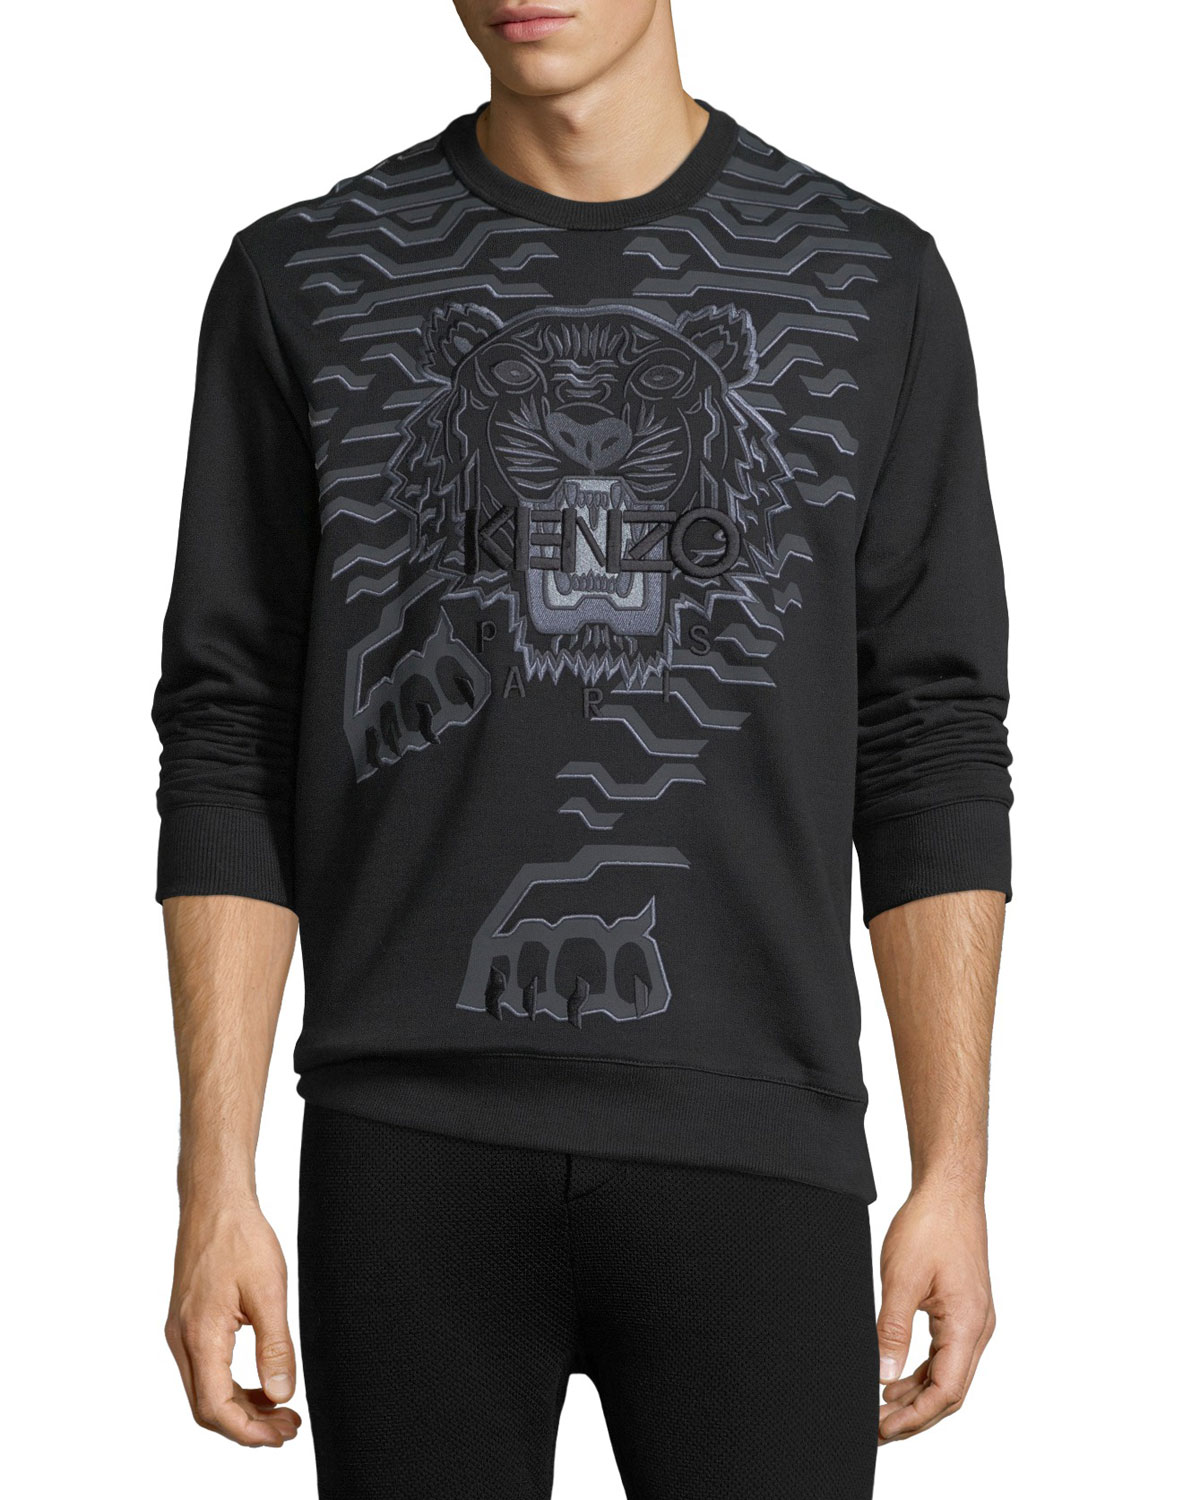 Geometric Tiger-Graphic Sweatshirt